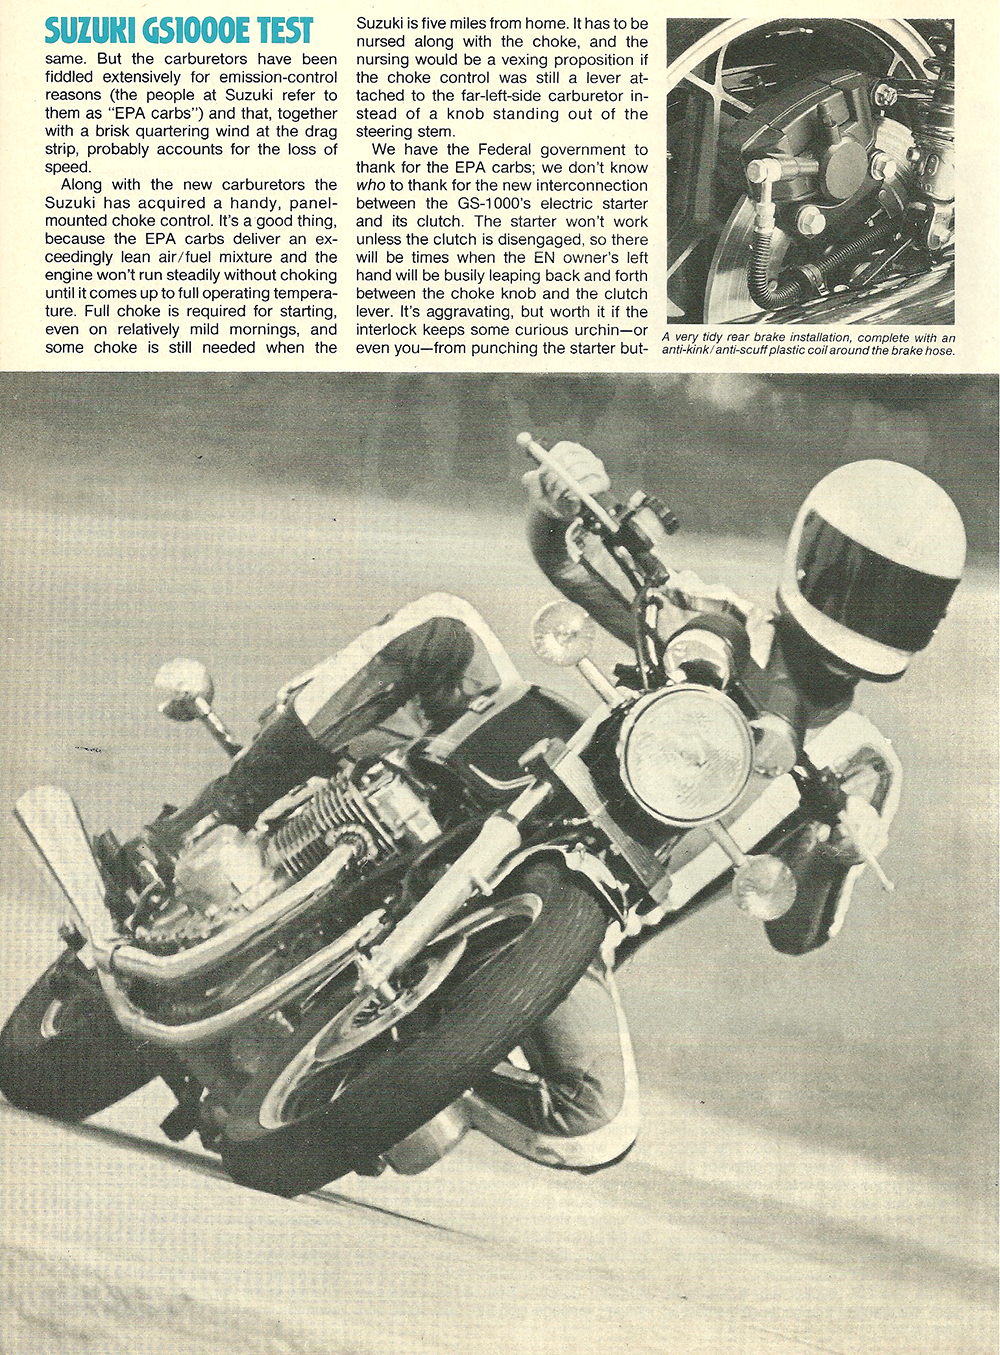 1979 Suzuki GS1000E road test 05.jpg